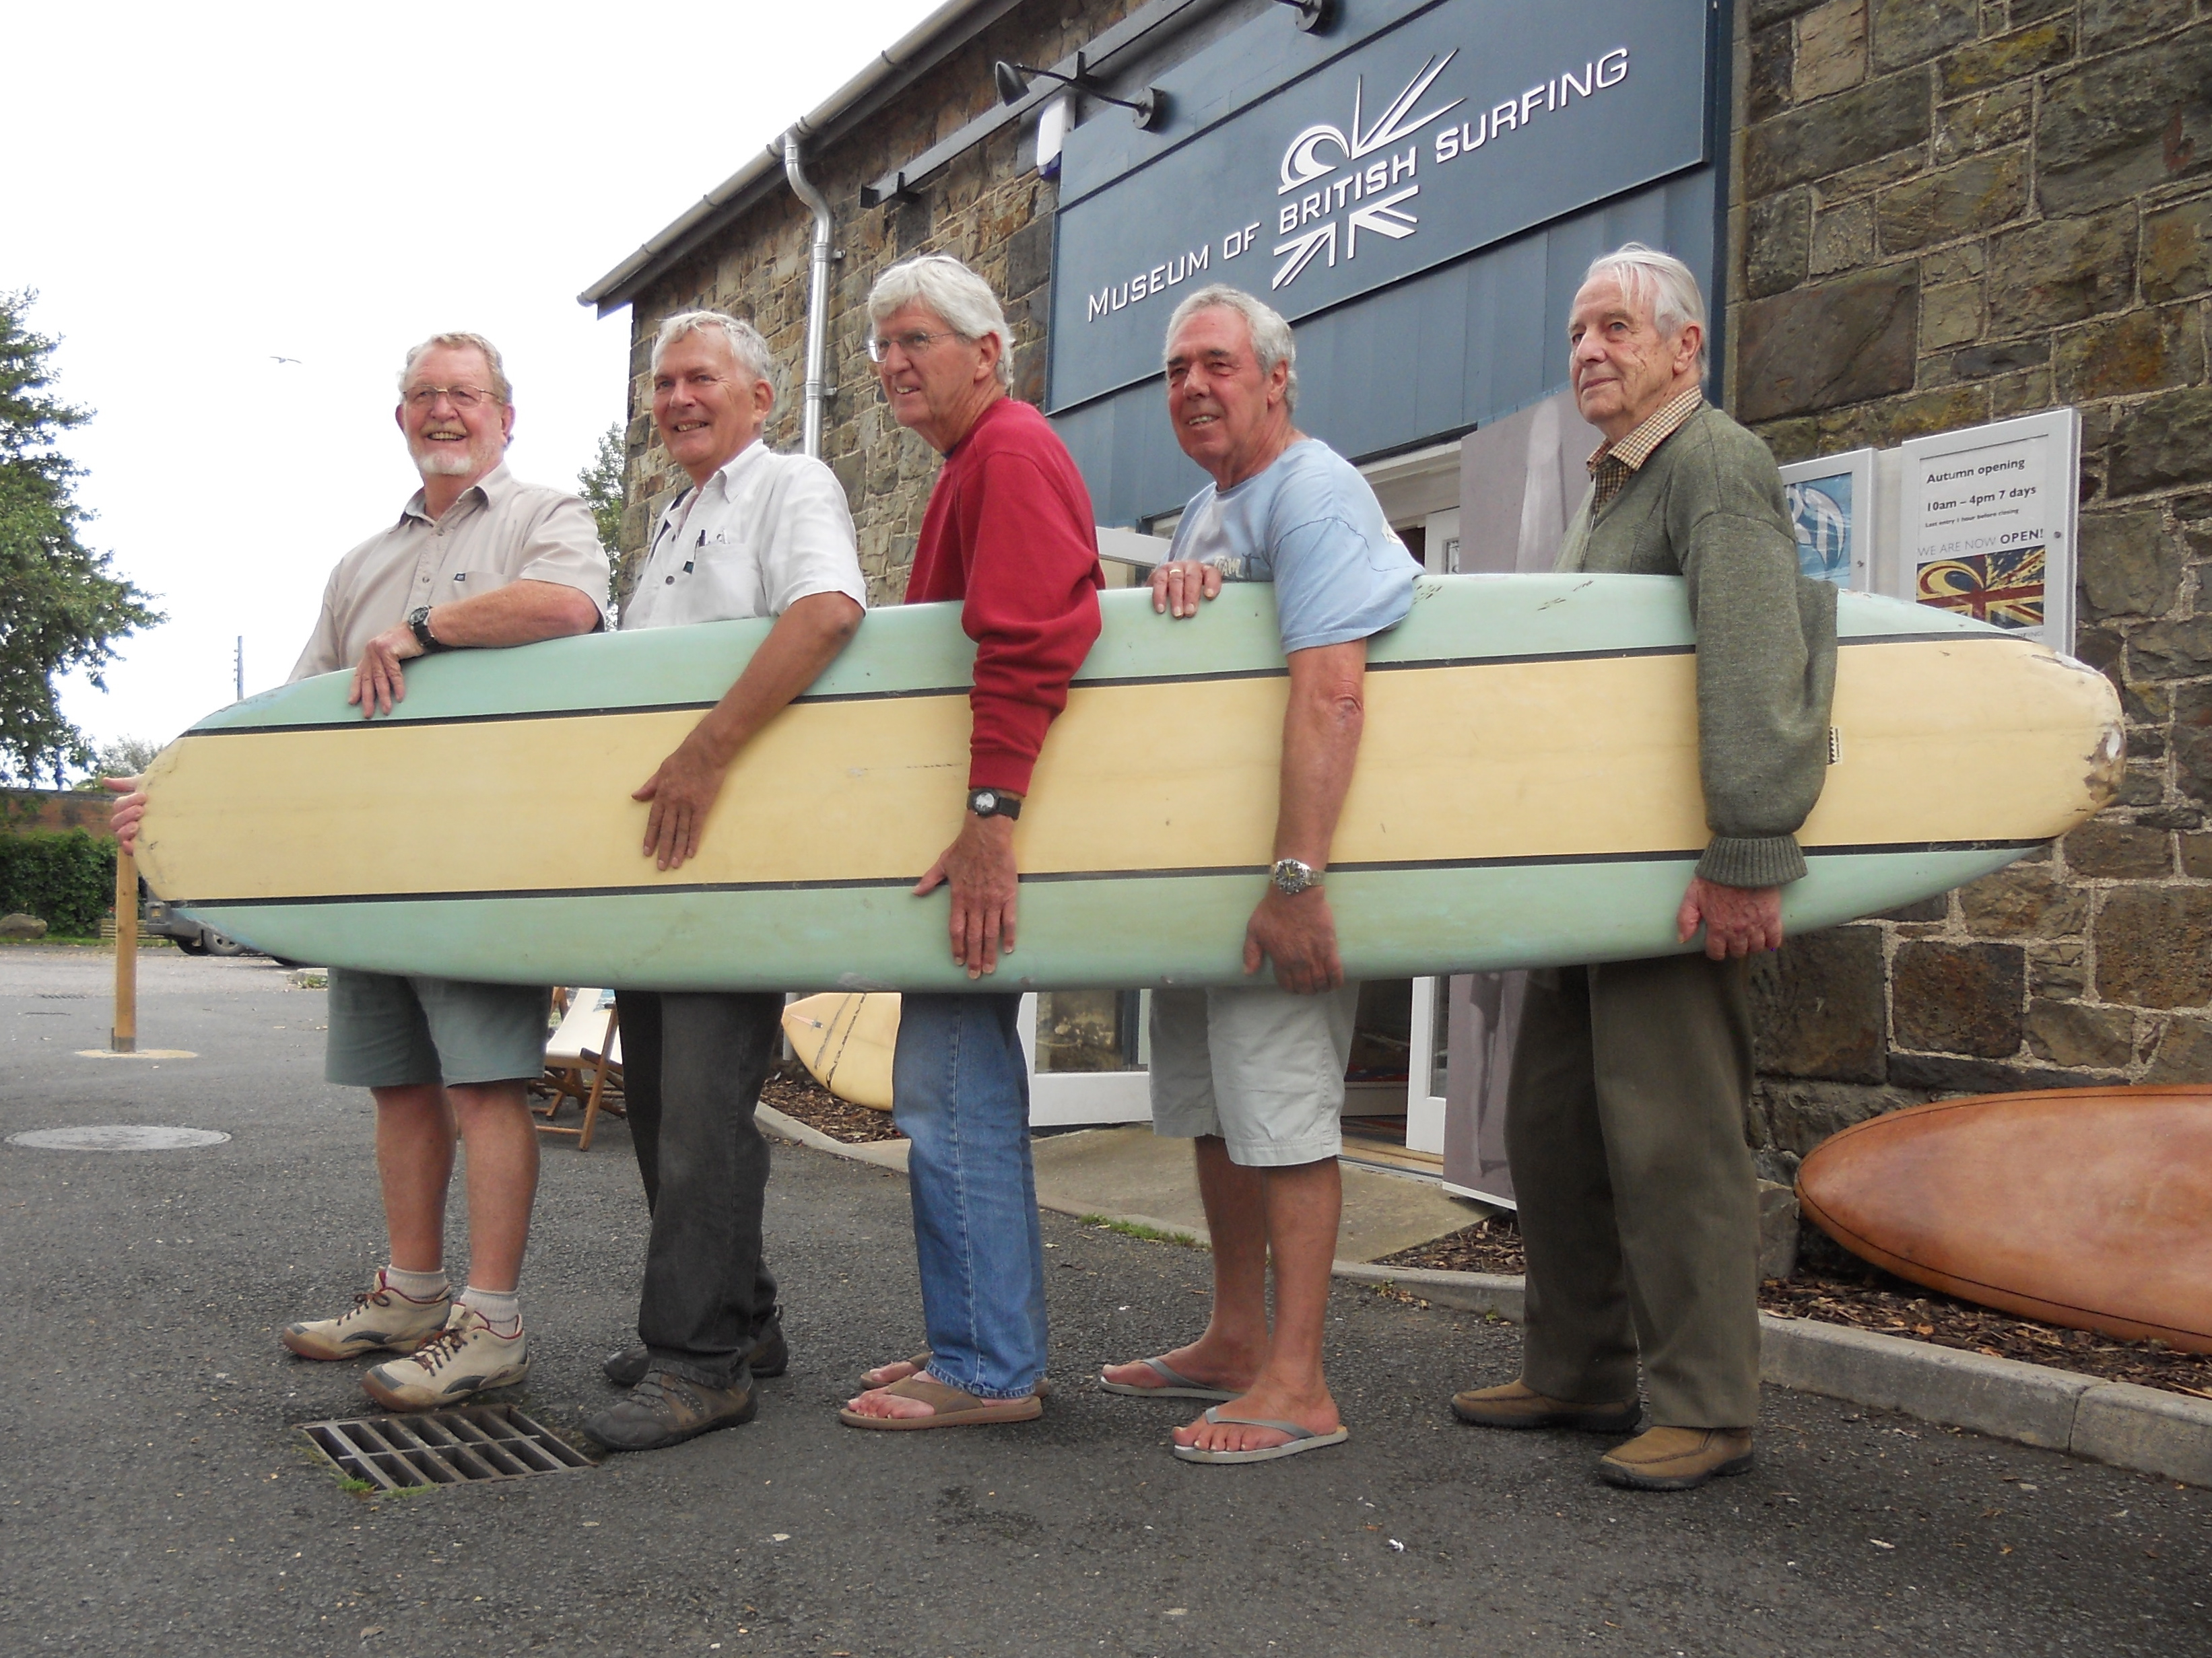 Surfing legends, classic surfboards at Museum of British Surfing